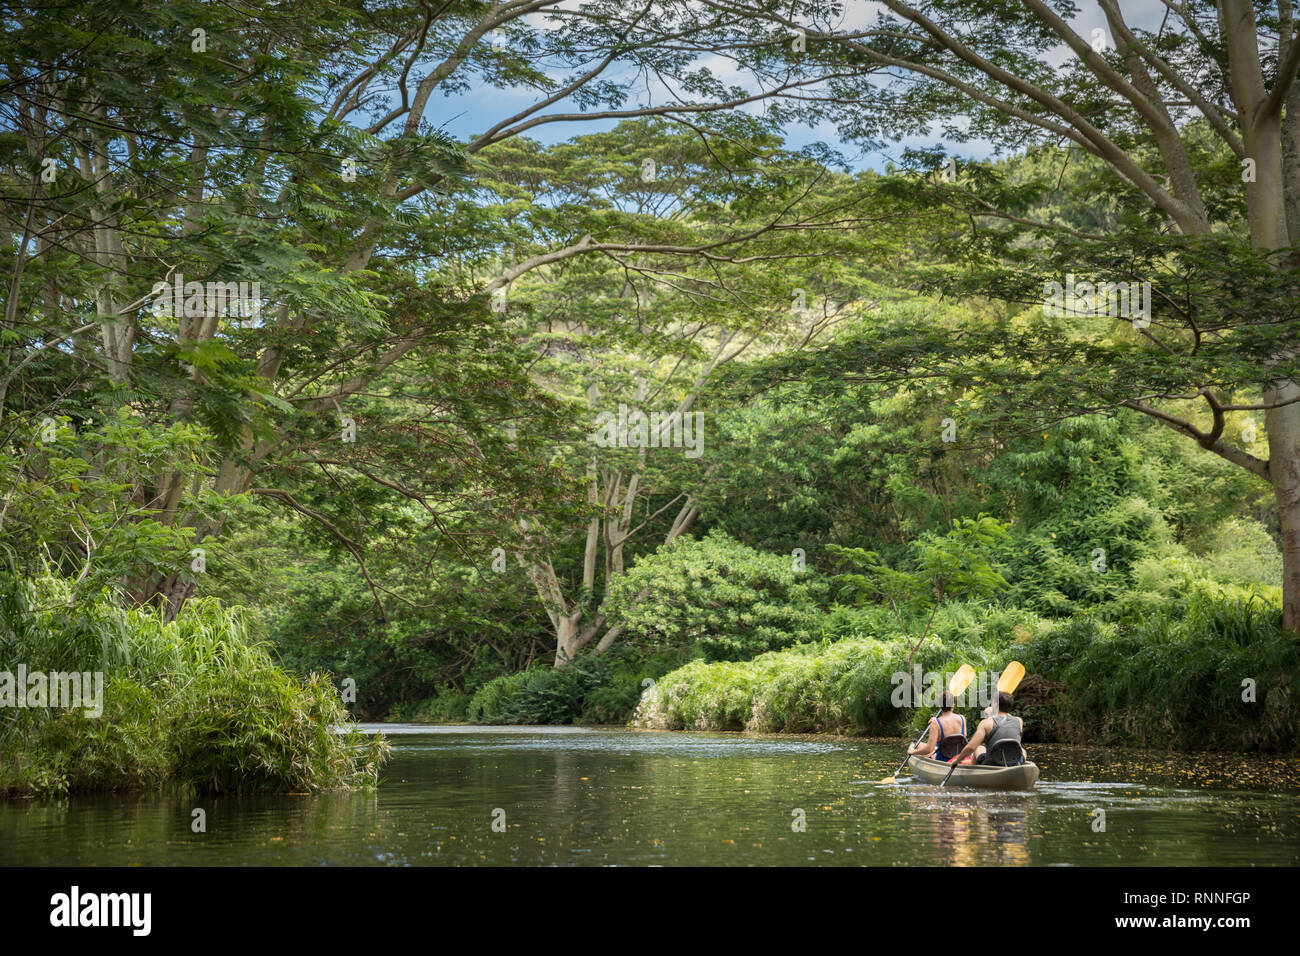 The Wailua River, Wailua, Kauai, Hawaii, is a popular and scenic place to enjoy exploring by kayak and hikes to various sites along the river. - Stock Image